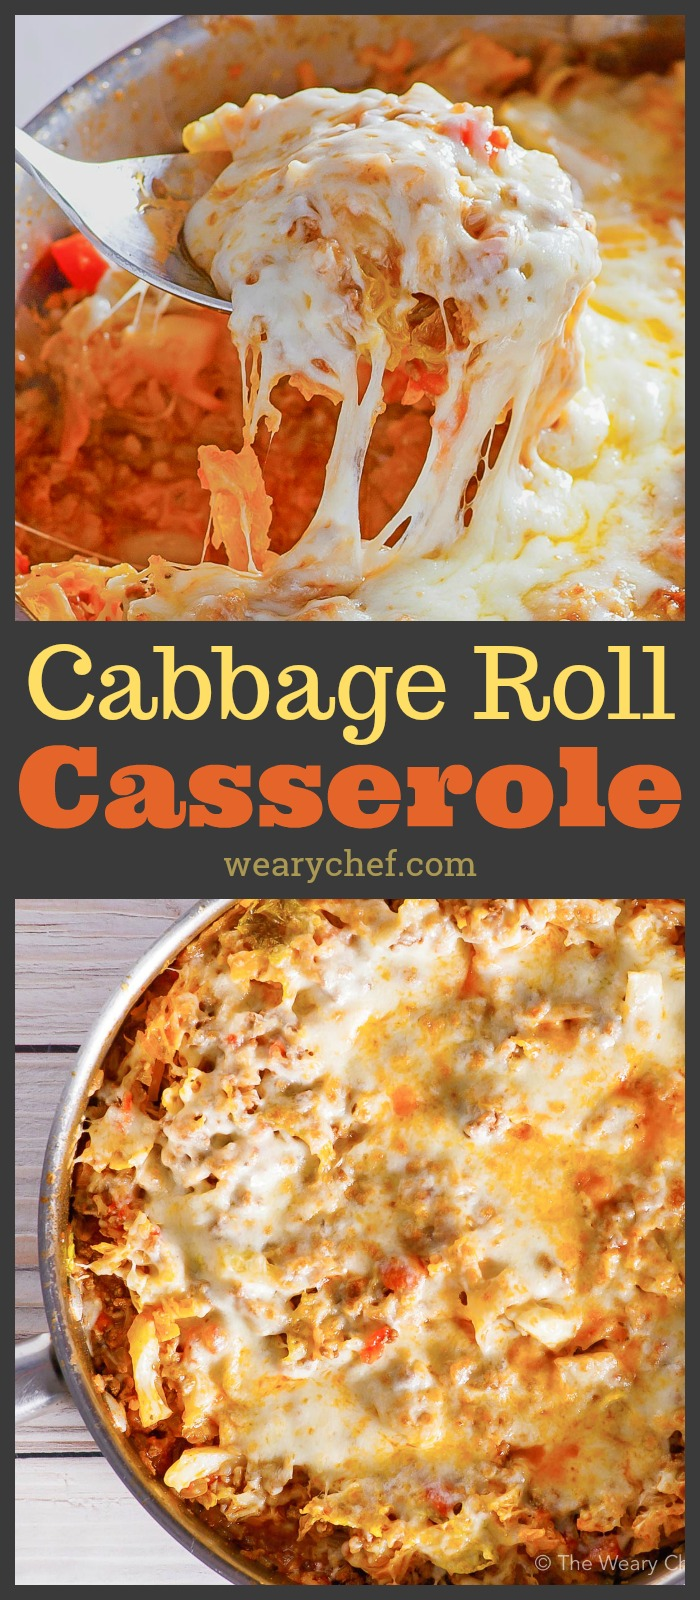 Whether you need a quick dinner or have a couple hours to spare, this Cabbage Roll Casserole is the recipe for you! You can make it in 30 minutes with white rice or low and slow with brown rice. #cabbage #cabbageroll #casserole